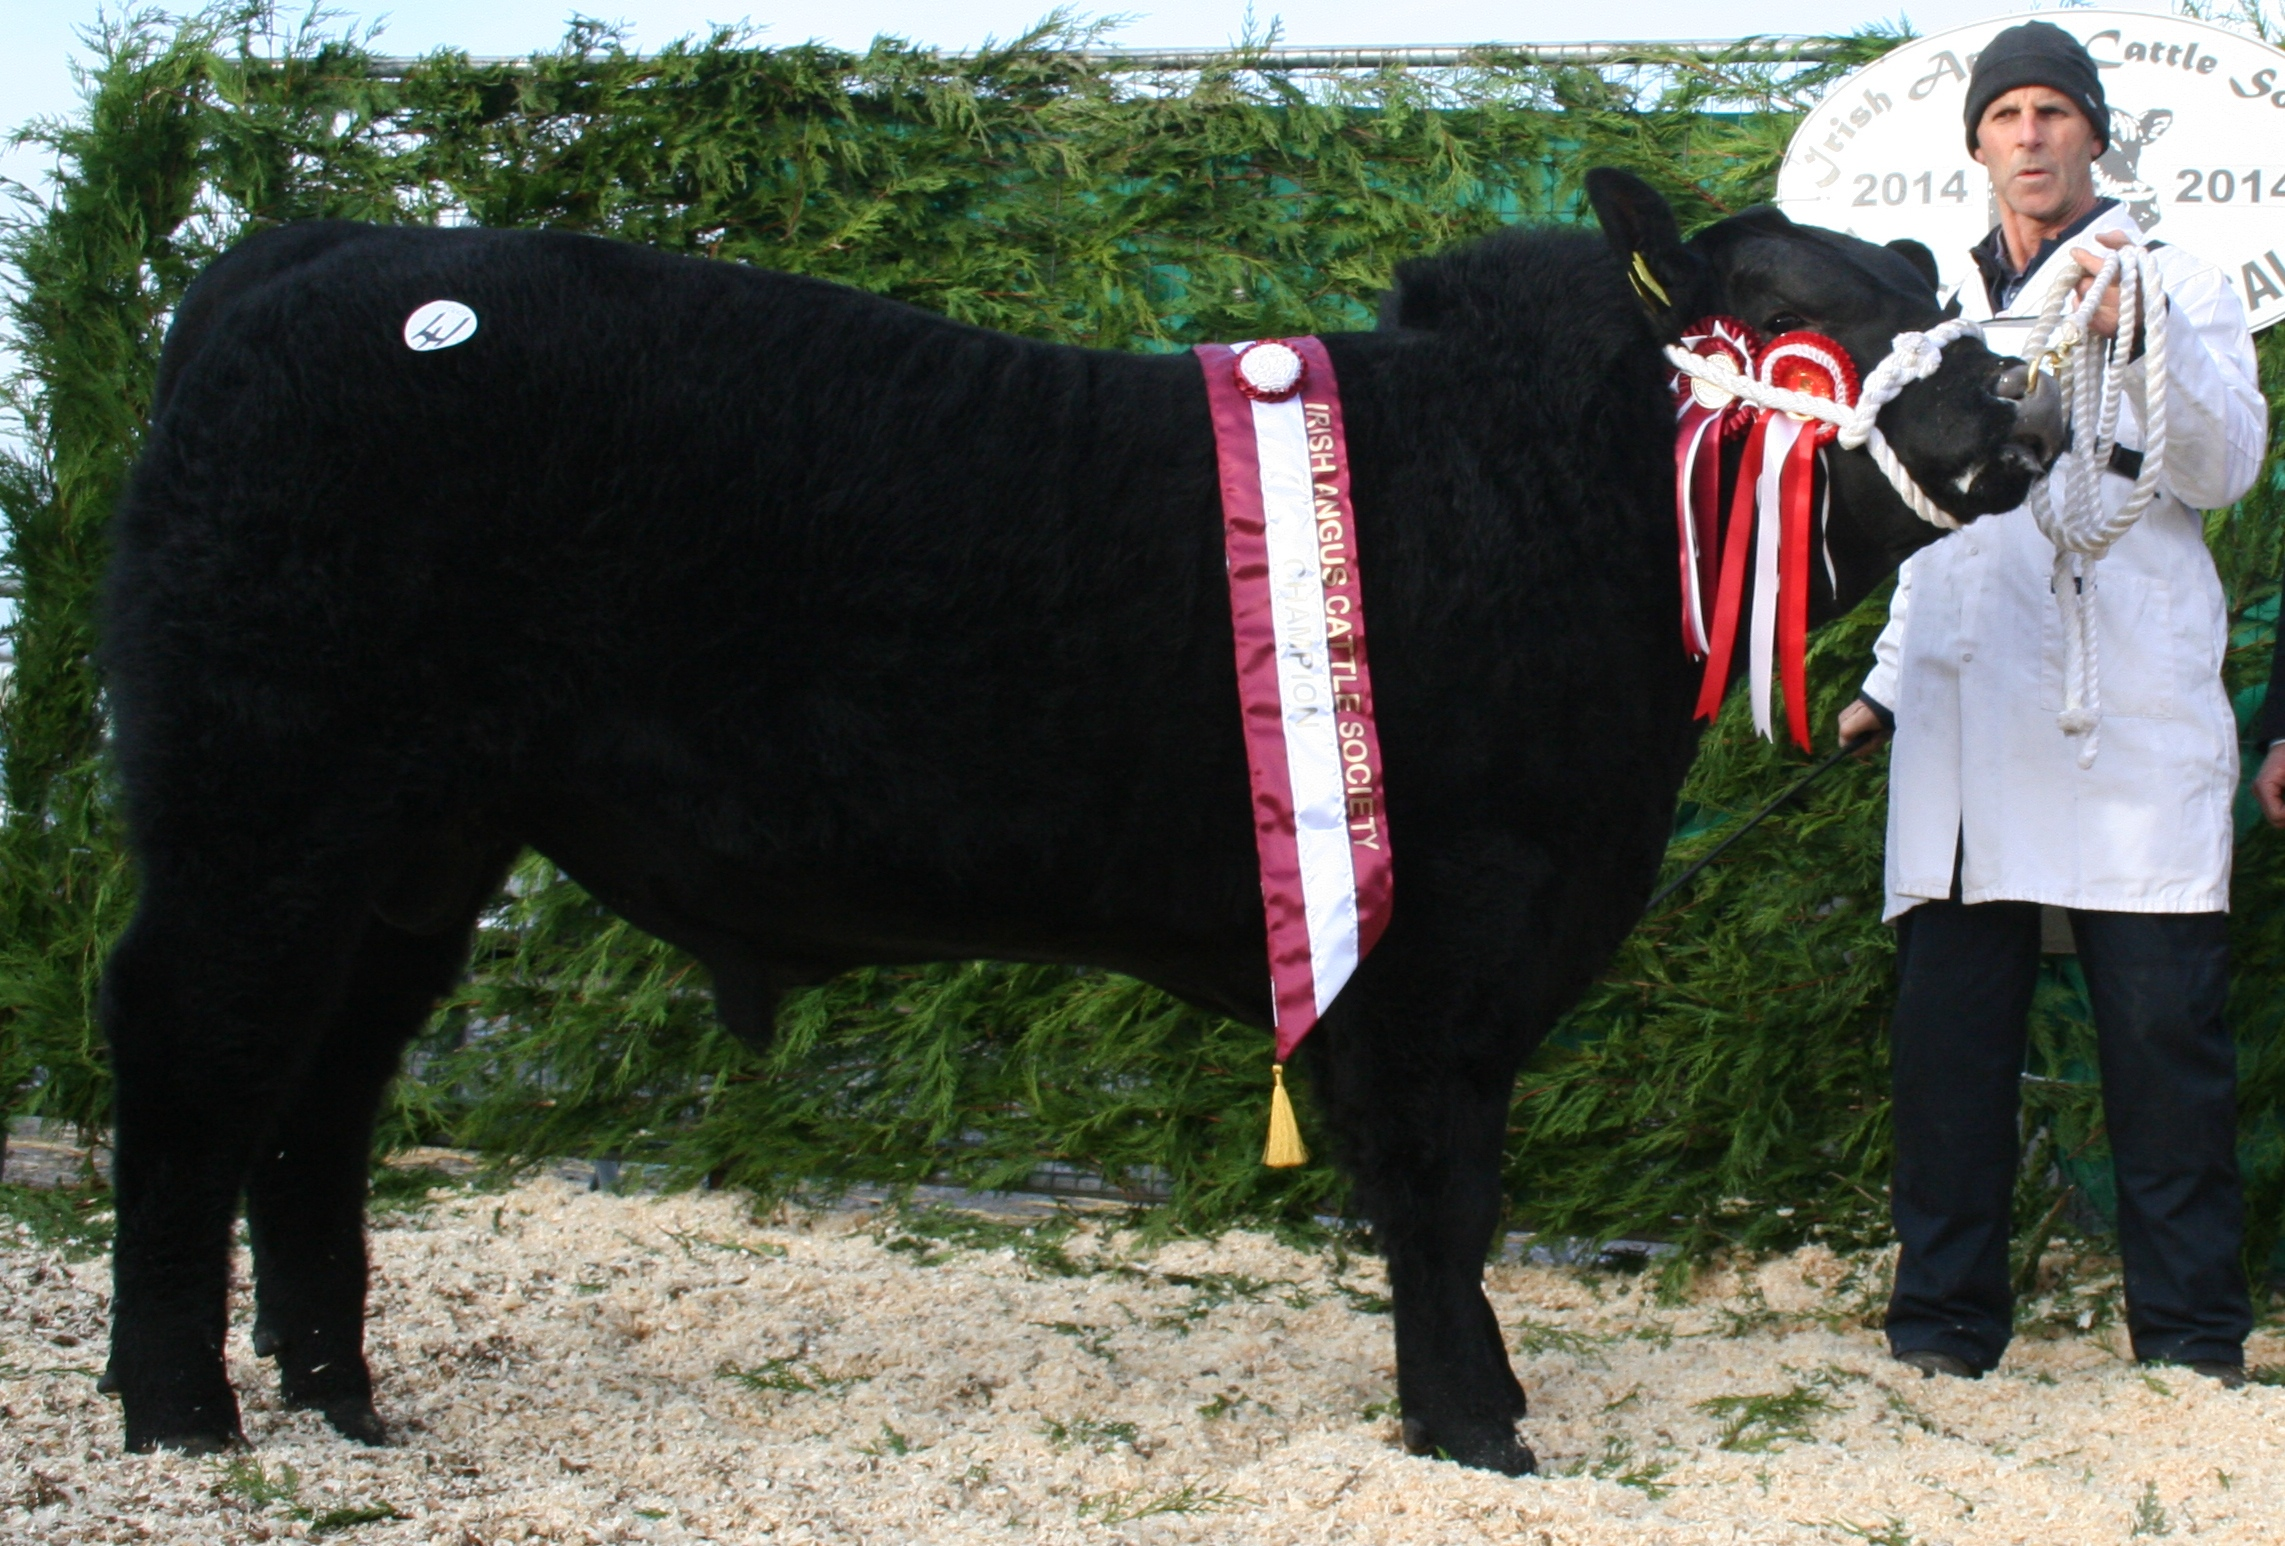 2014 male champion - Portanes K Black Buster, sold €4,700